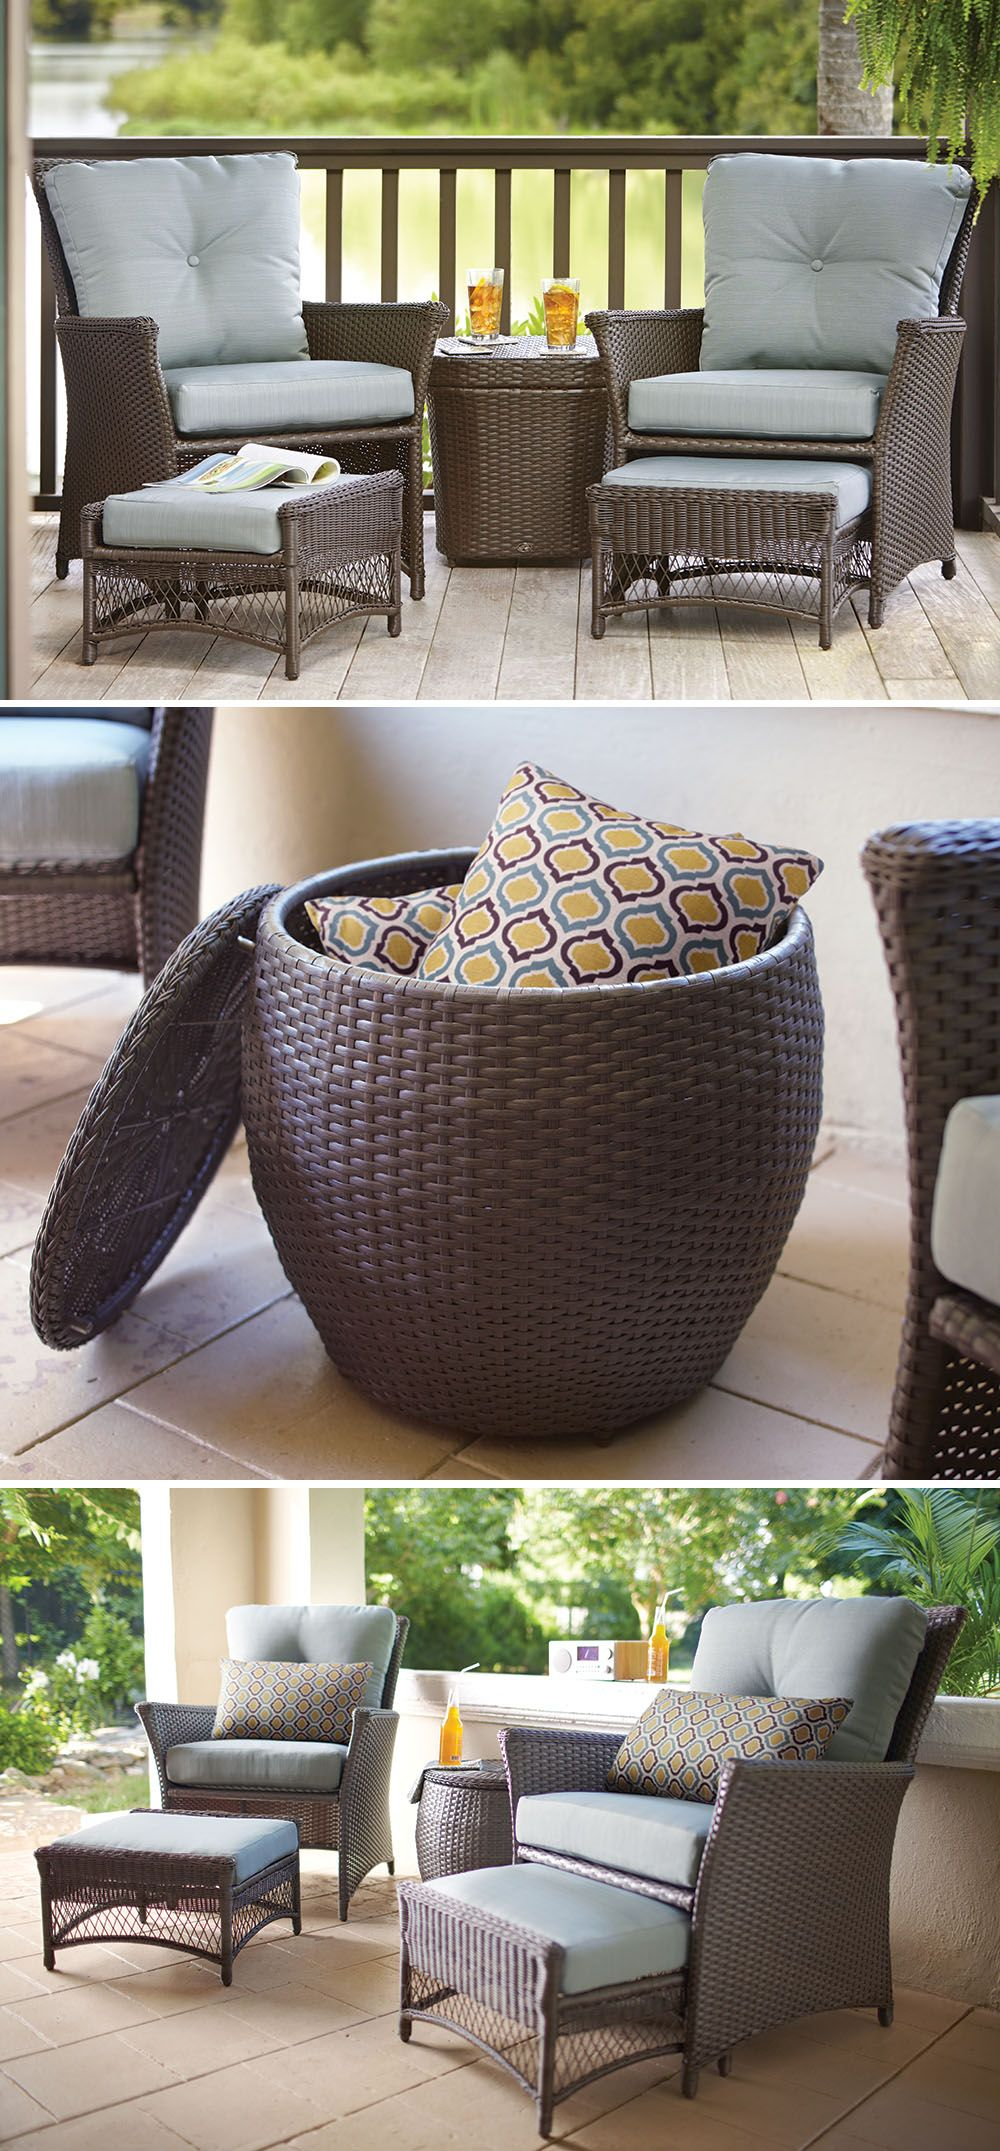 This affordable patio set is just the